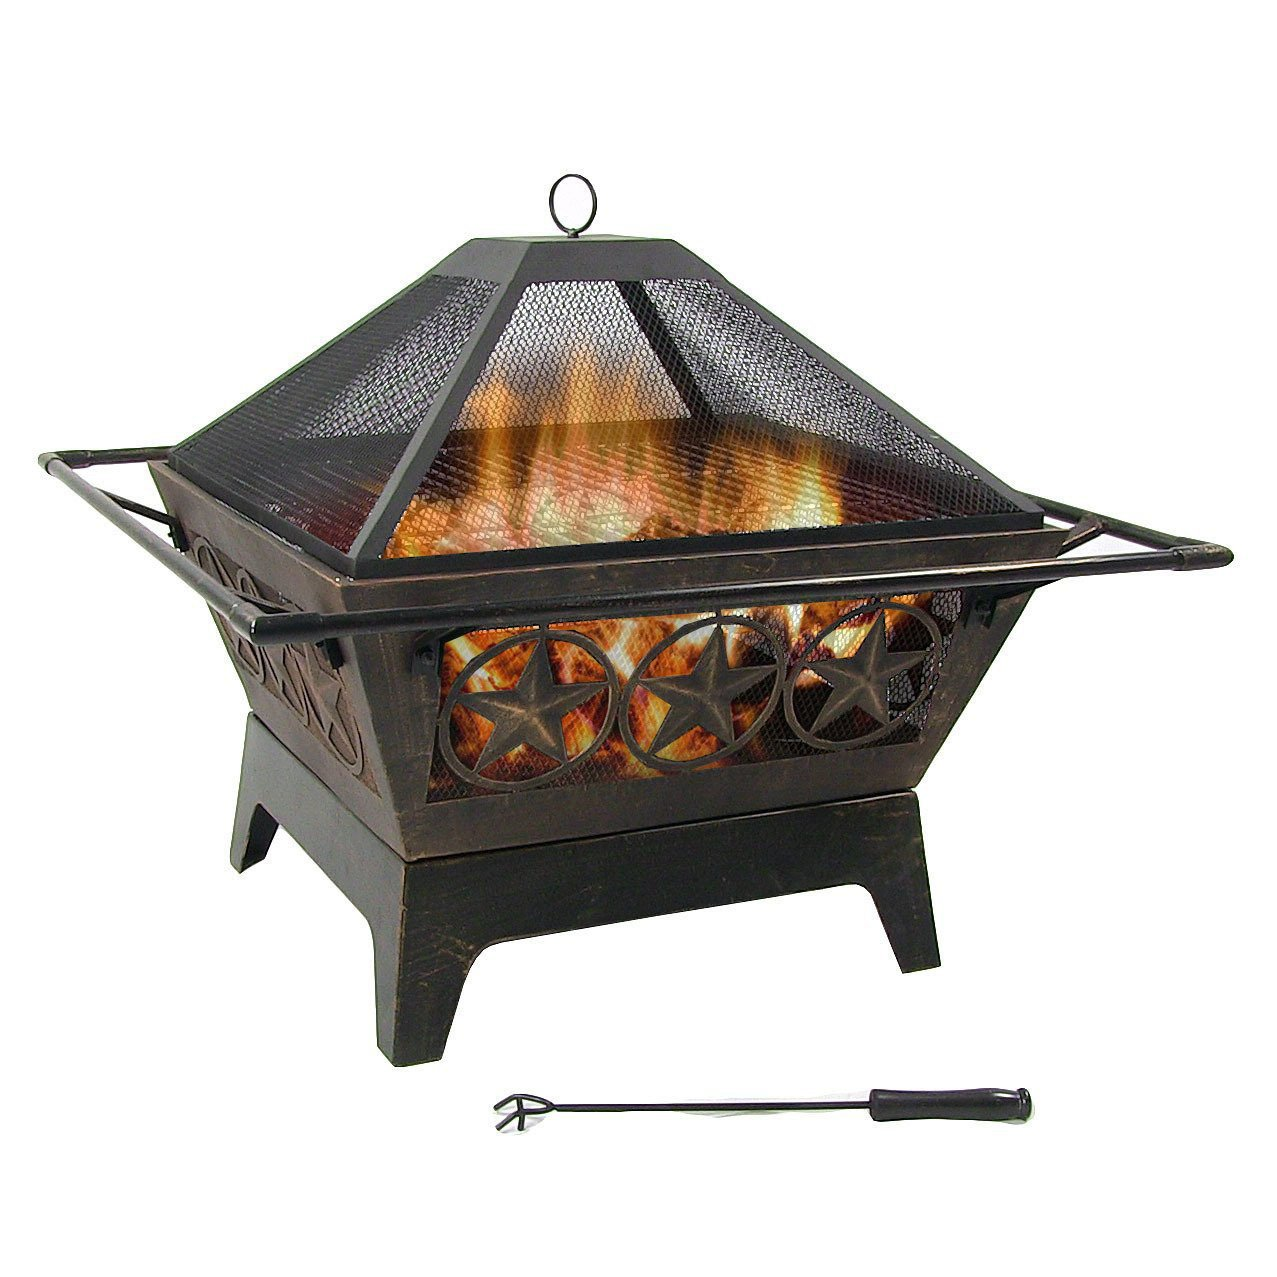 Sunnydaze Northern Galaxy Outdoor Fire Pit - 32 Inch Large Square Wood Burning Patio & Backyard Firepit for Outside with Cooking BBQ Grill Grate, Spark Screen, and Fireplace Poker by Sunnydaze Decor